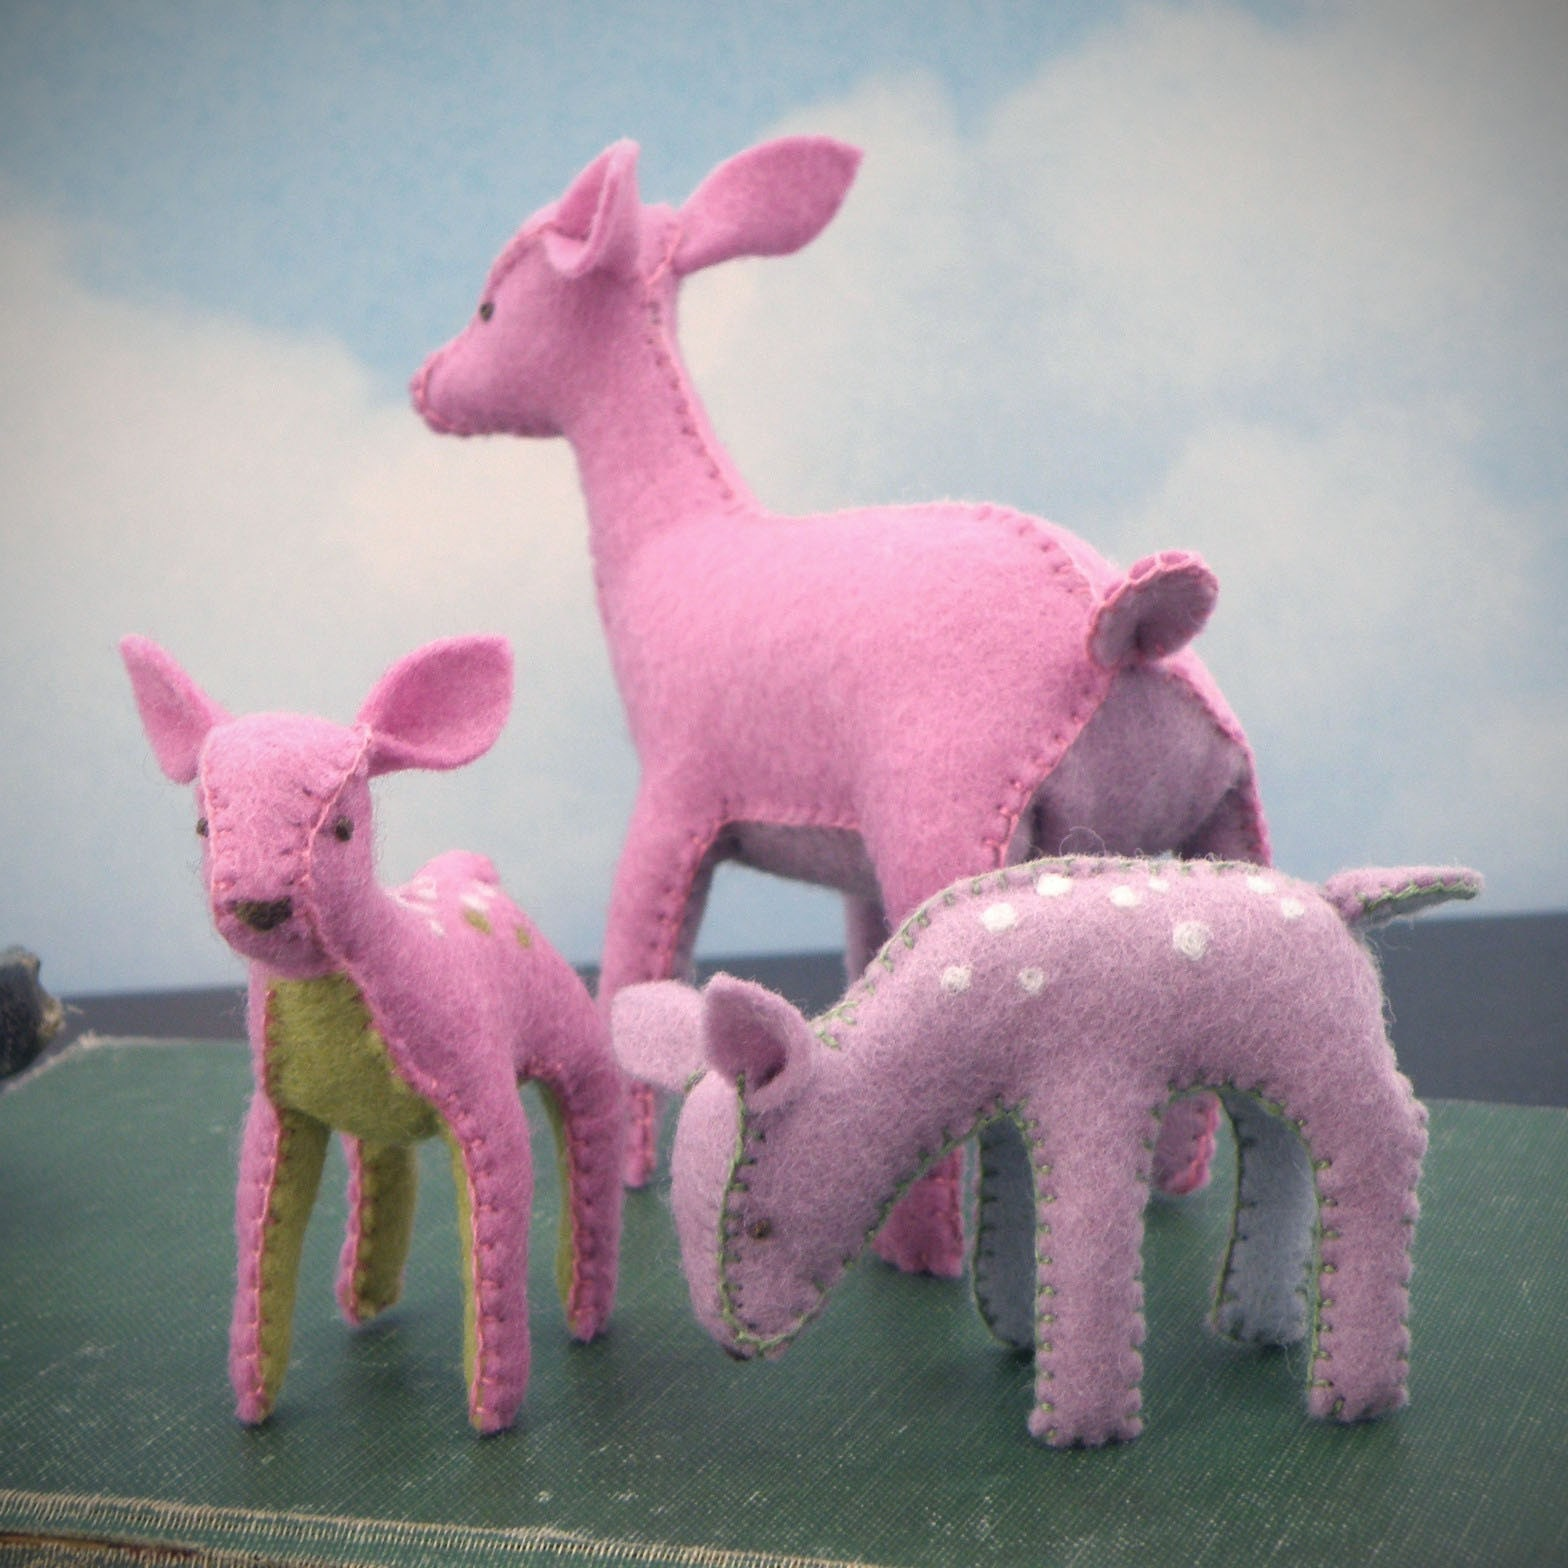 Deer family - made to order just for you - Tranquil herd of 4 deer in complimentary colors